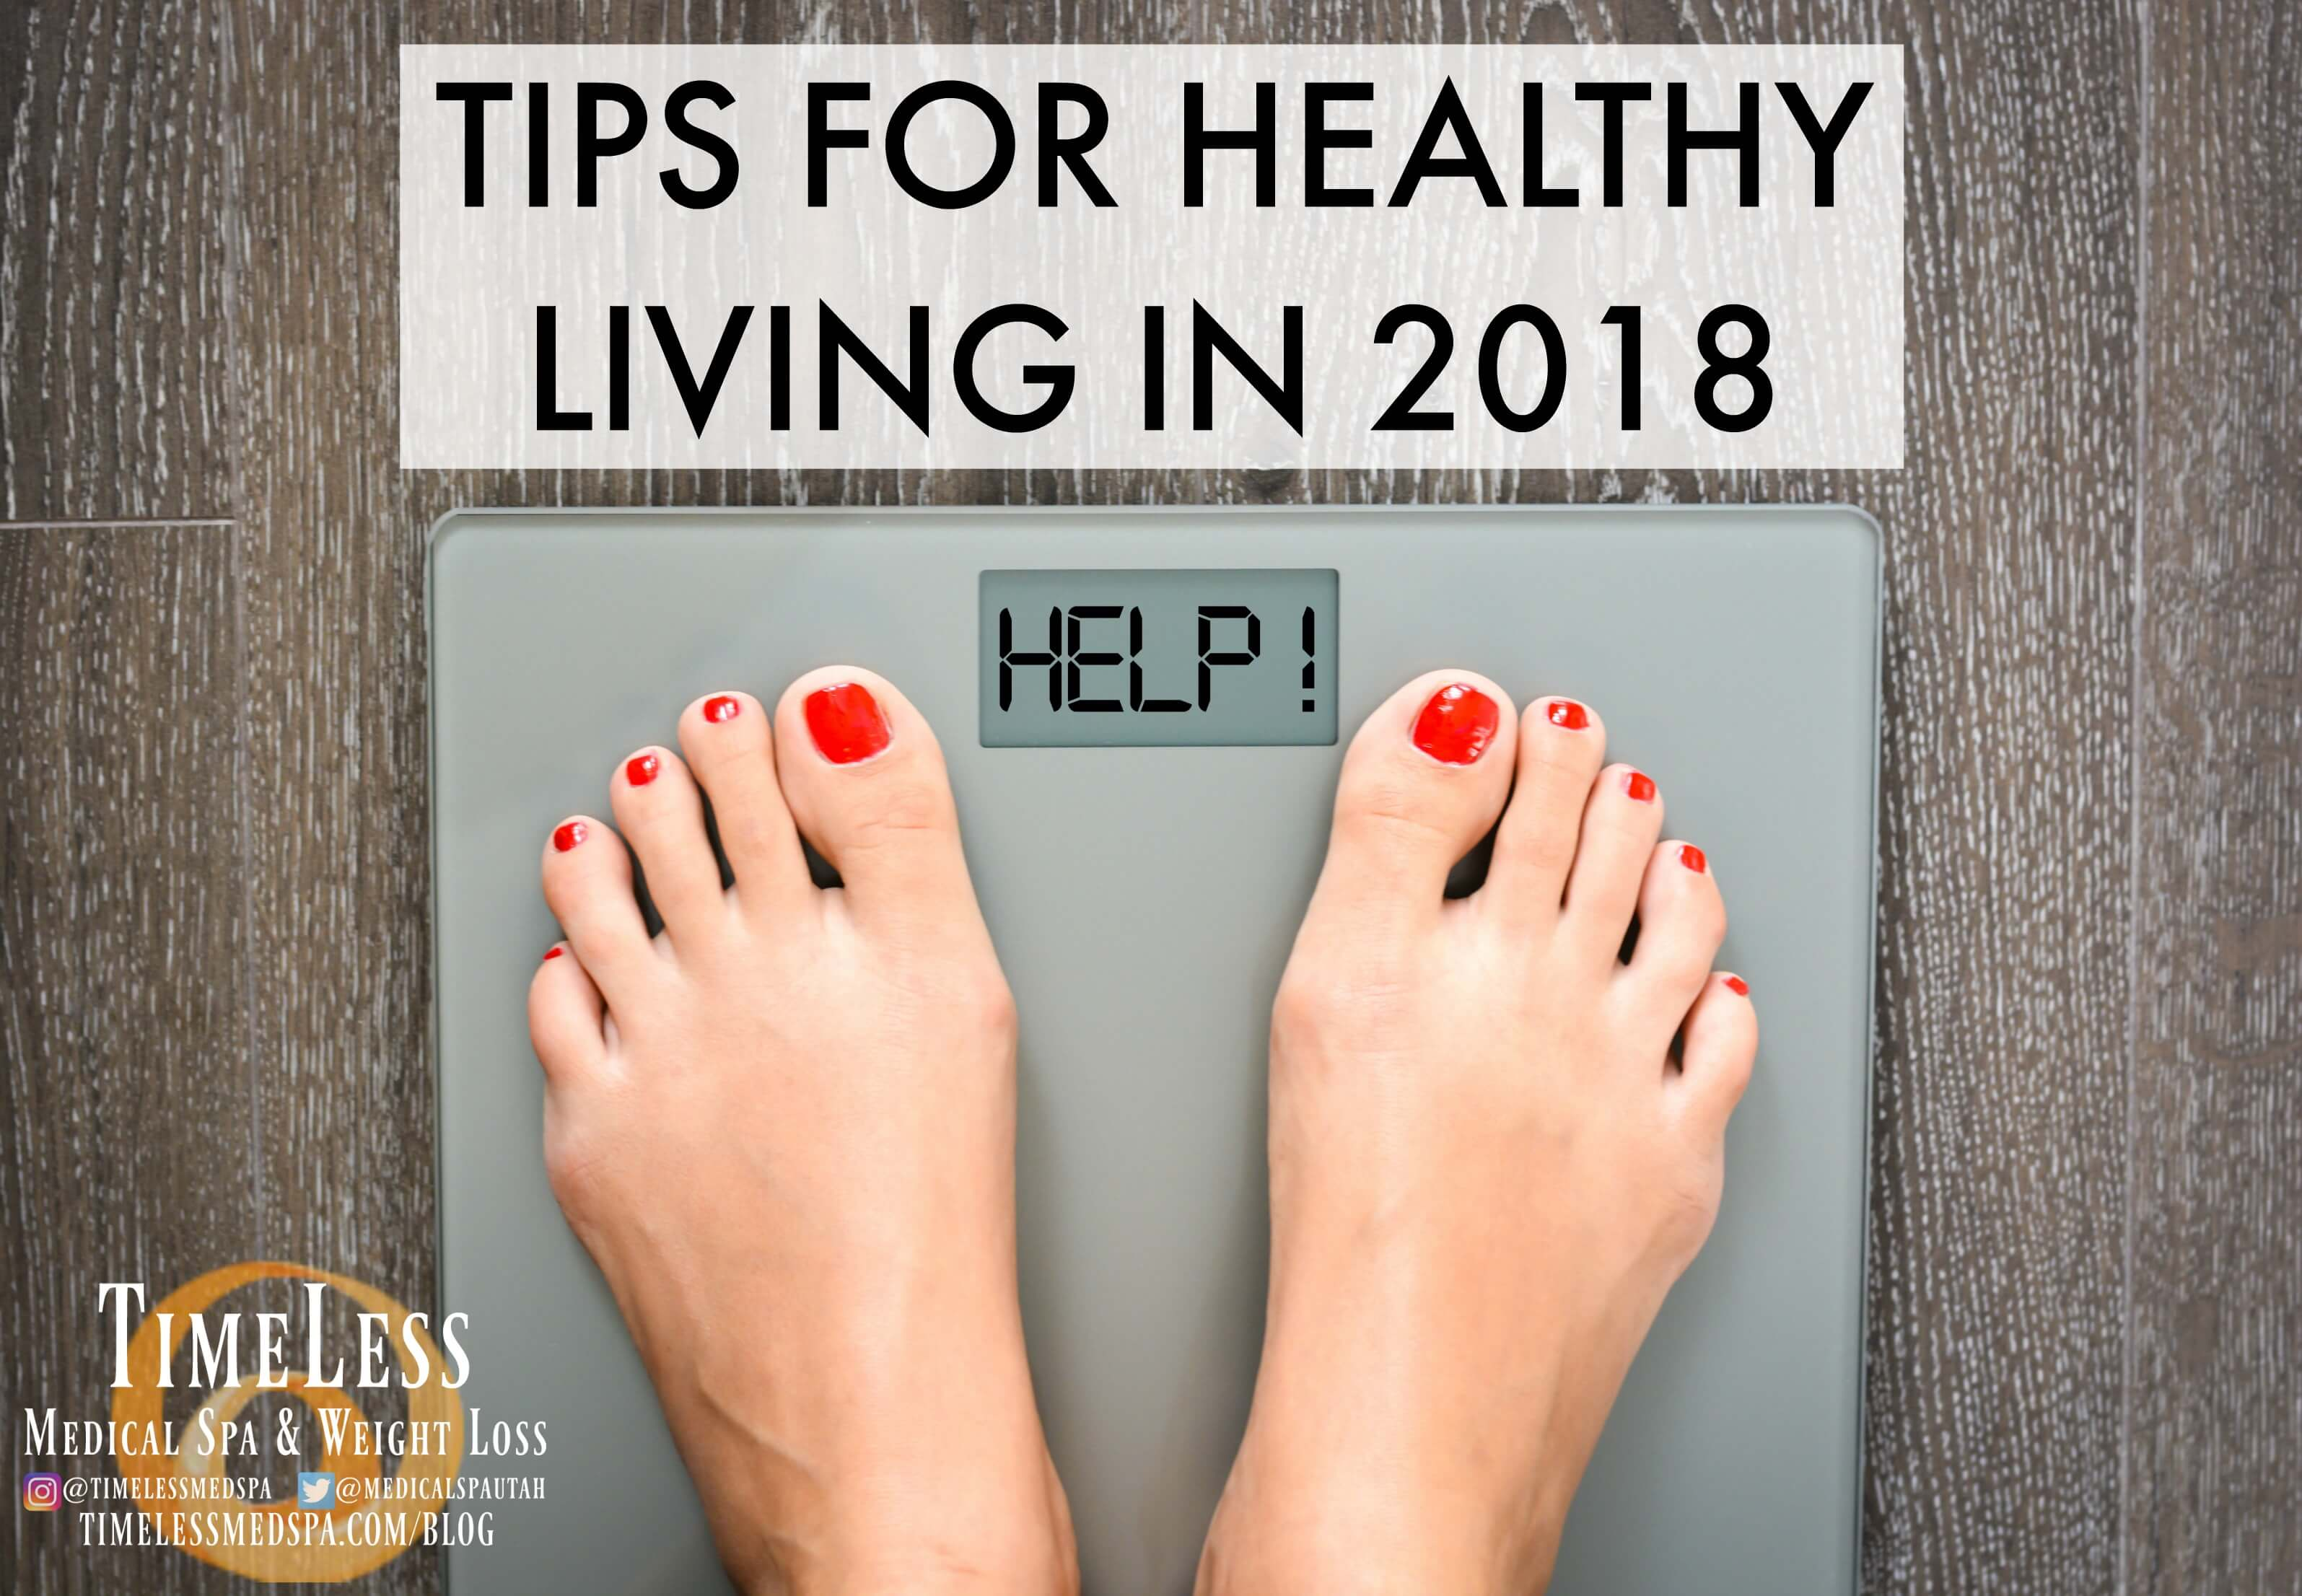 5 TIPS FOR HEALTHY LIVING IN 2018